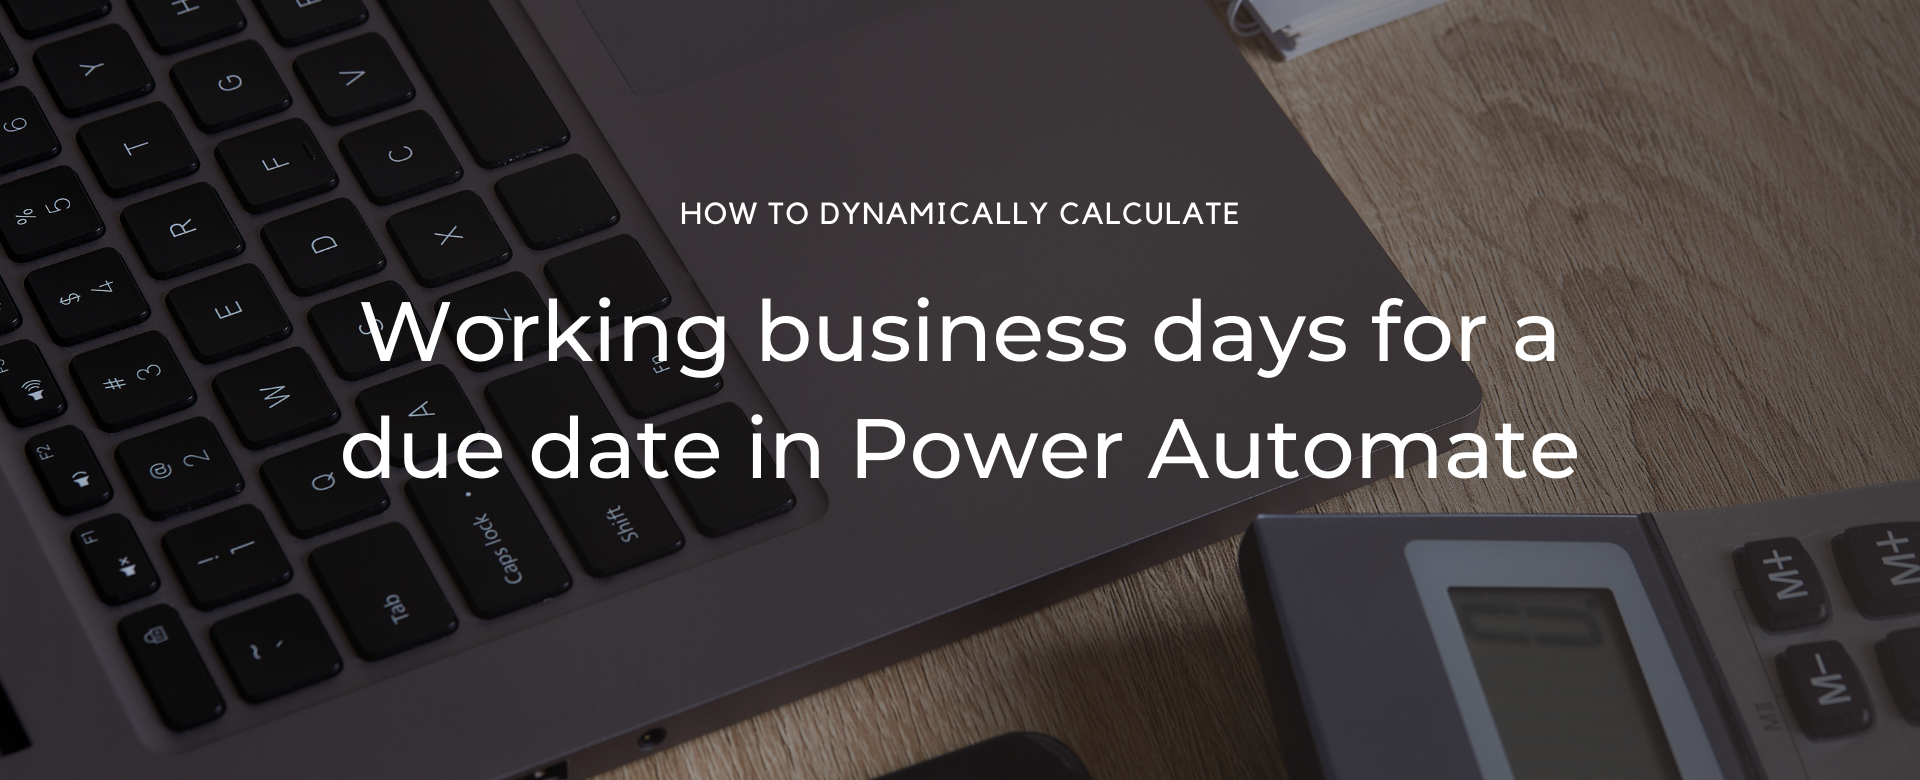 Using Power Automate to calculate Due Date for a task